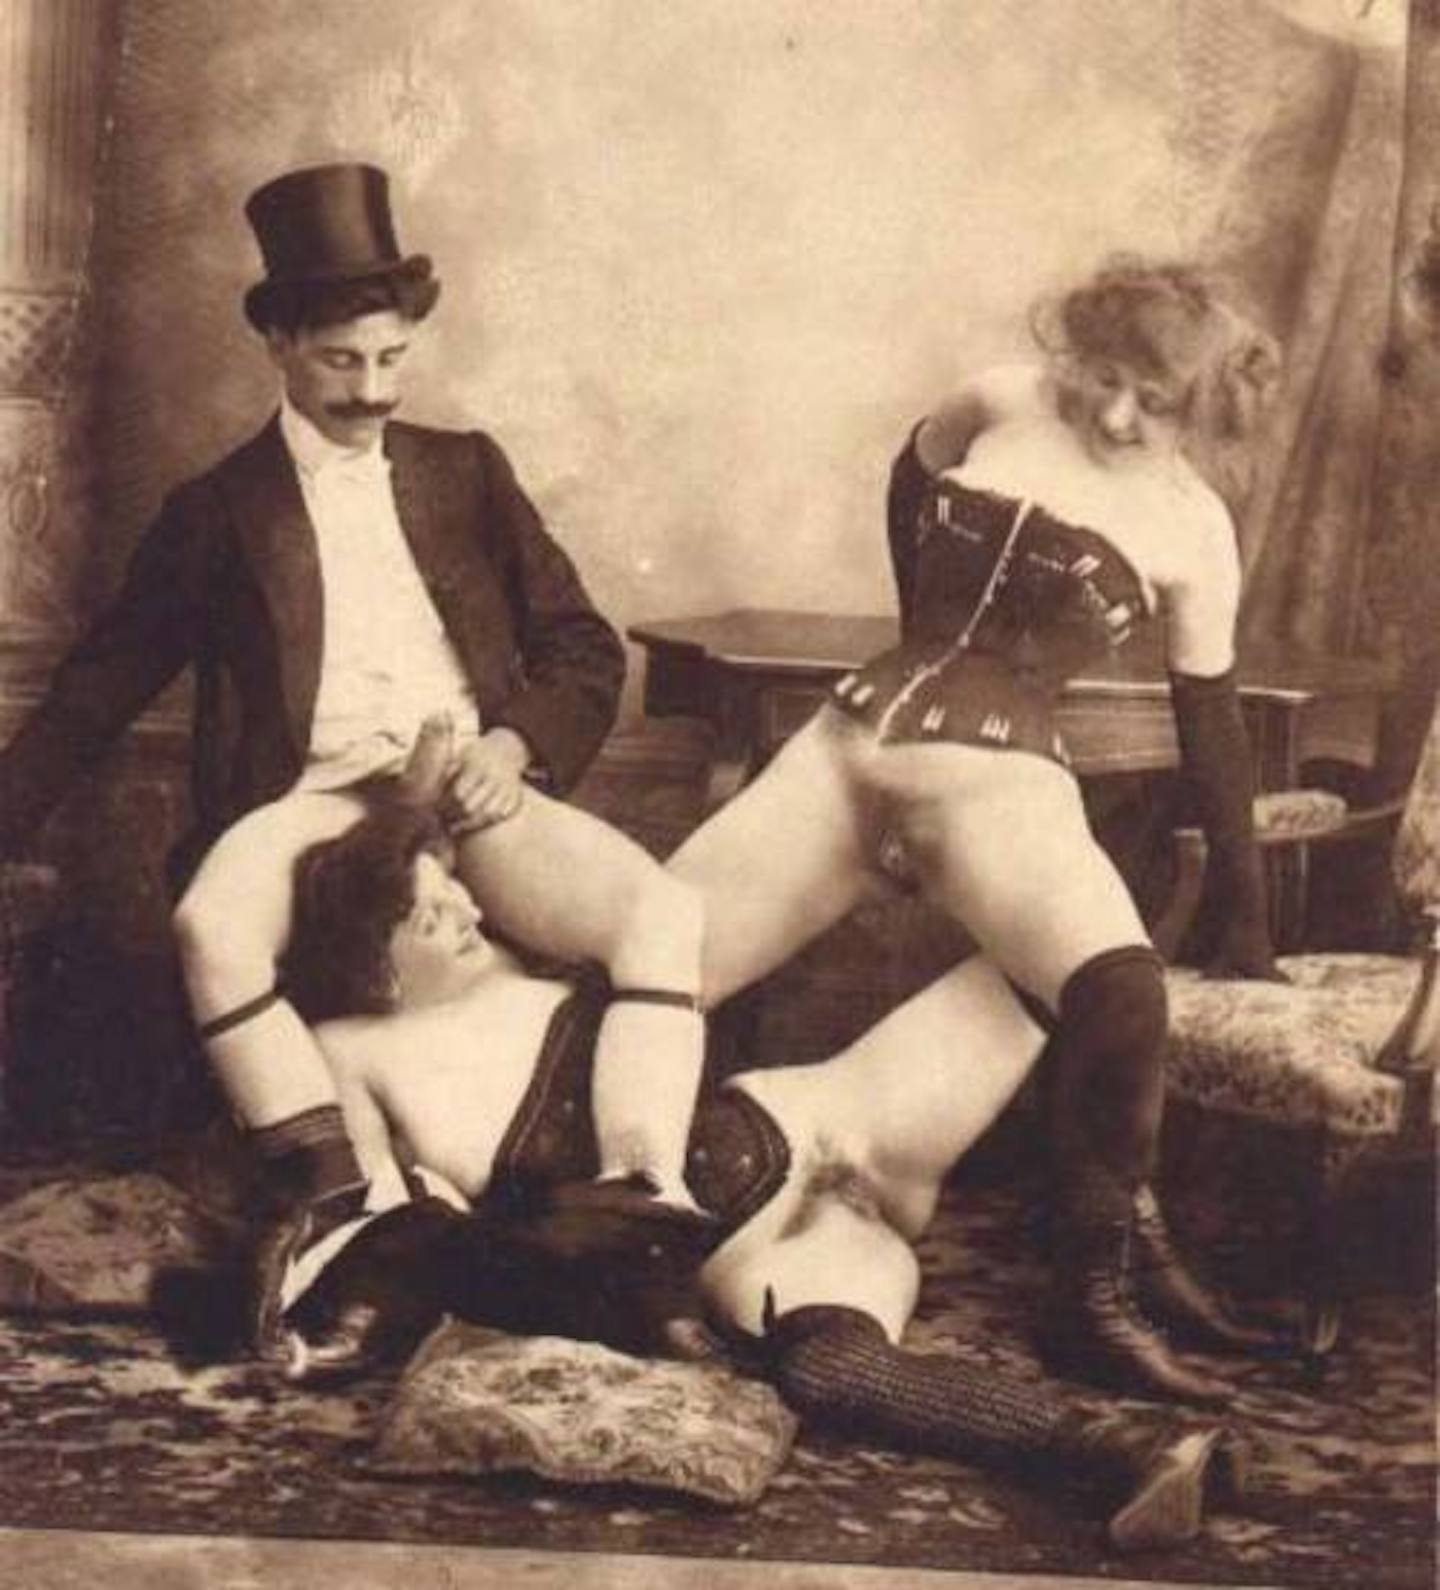 Victorian group sex pics